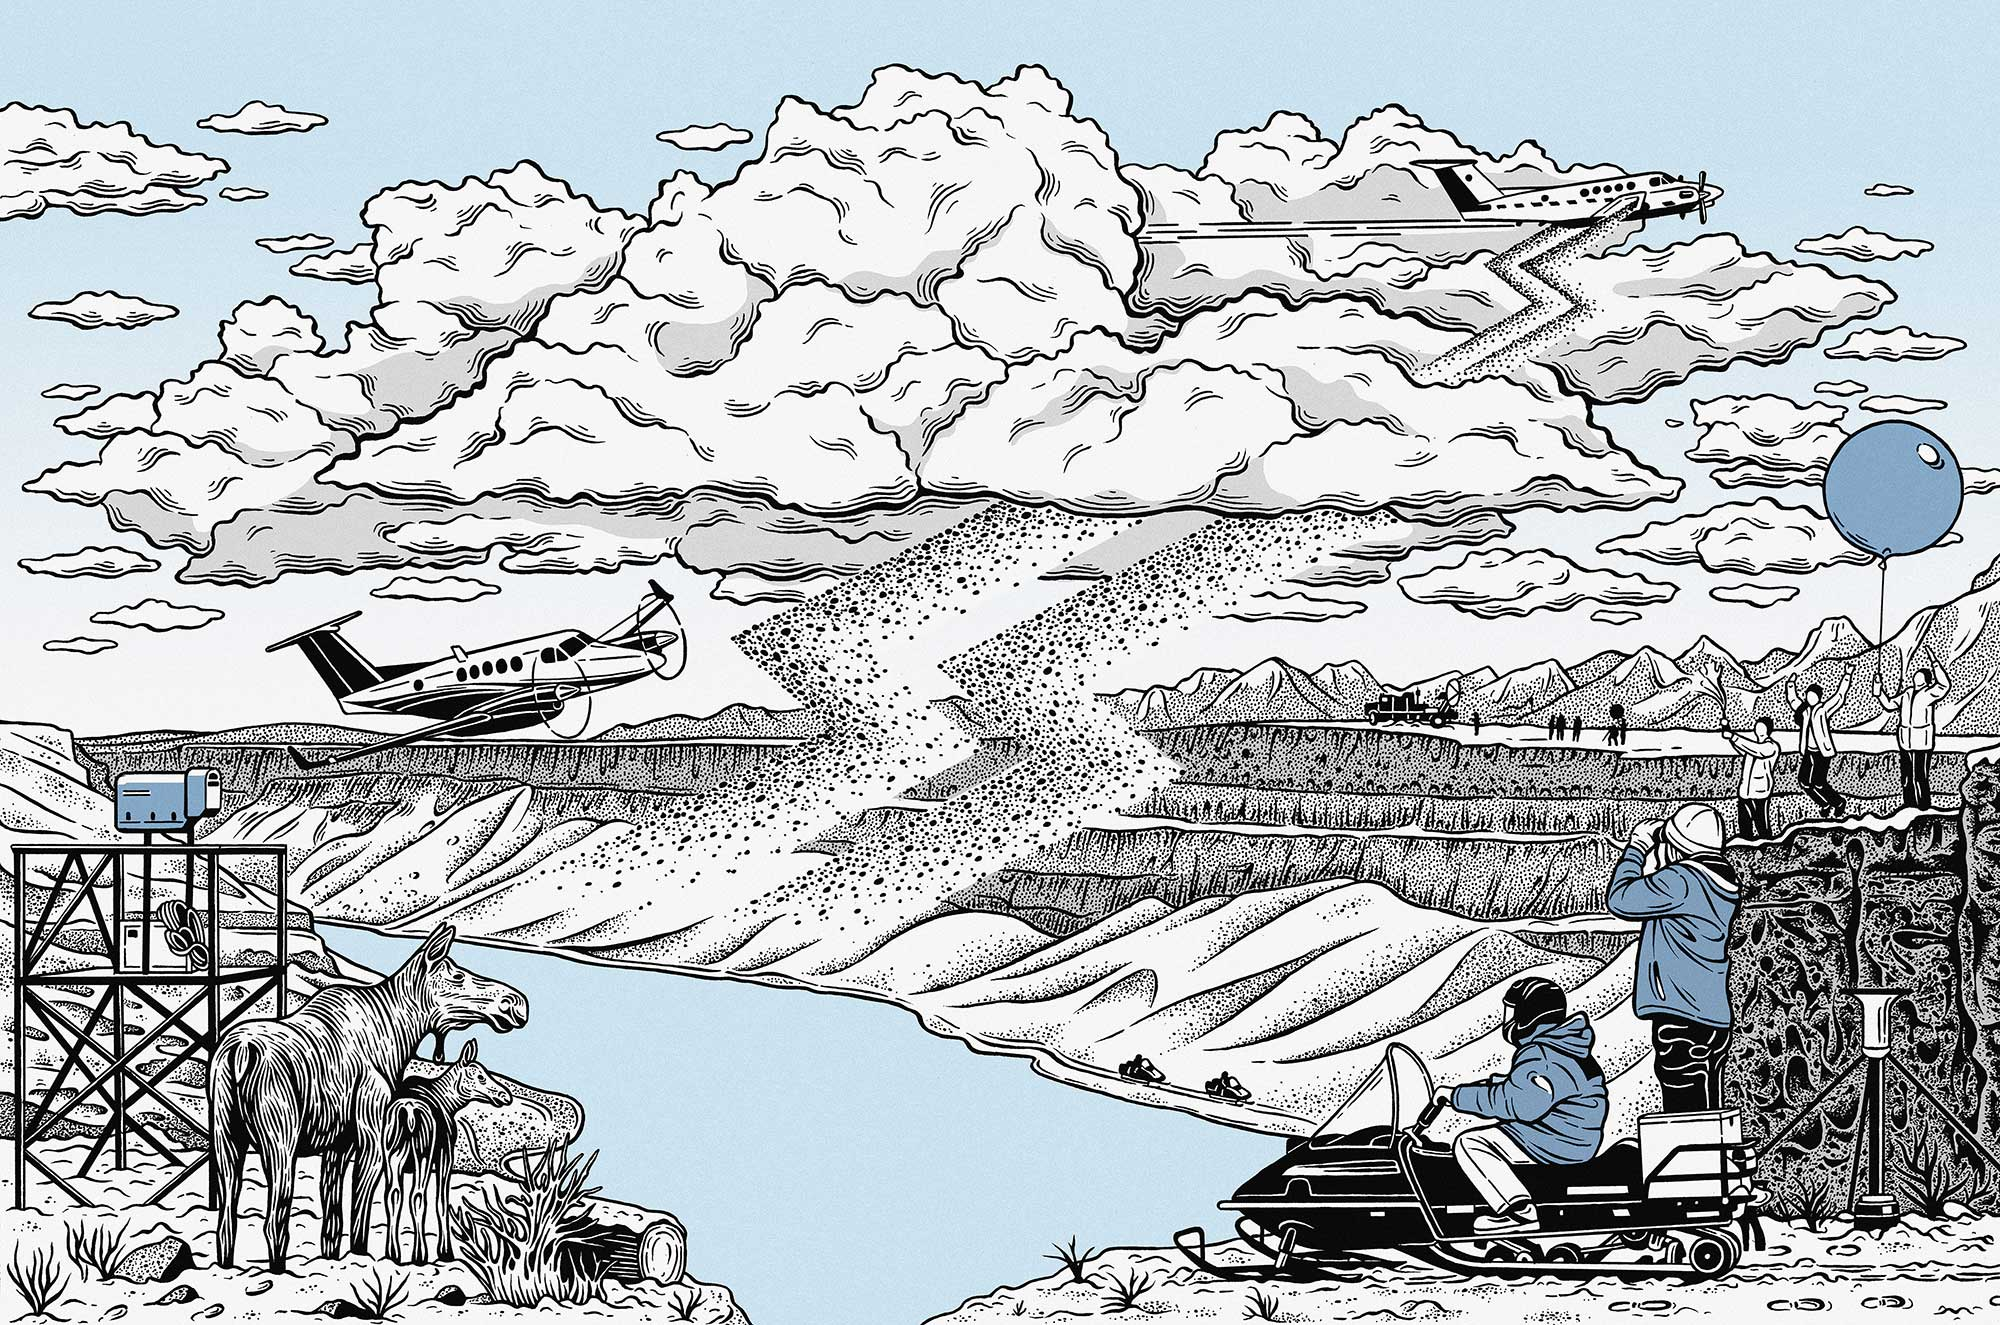 As drought looms, could this team of scientists prove cloud seeding works?